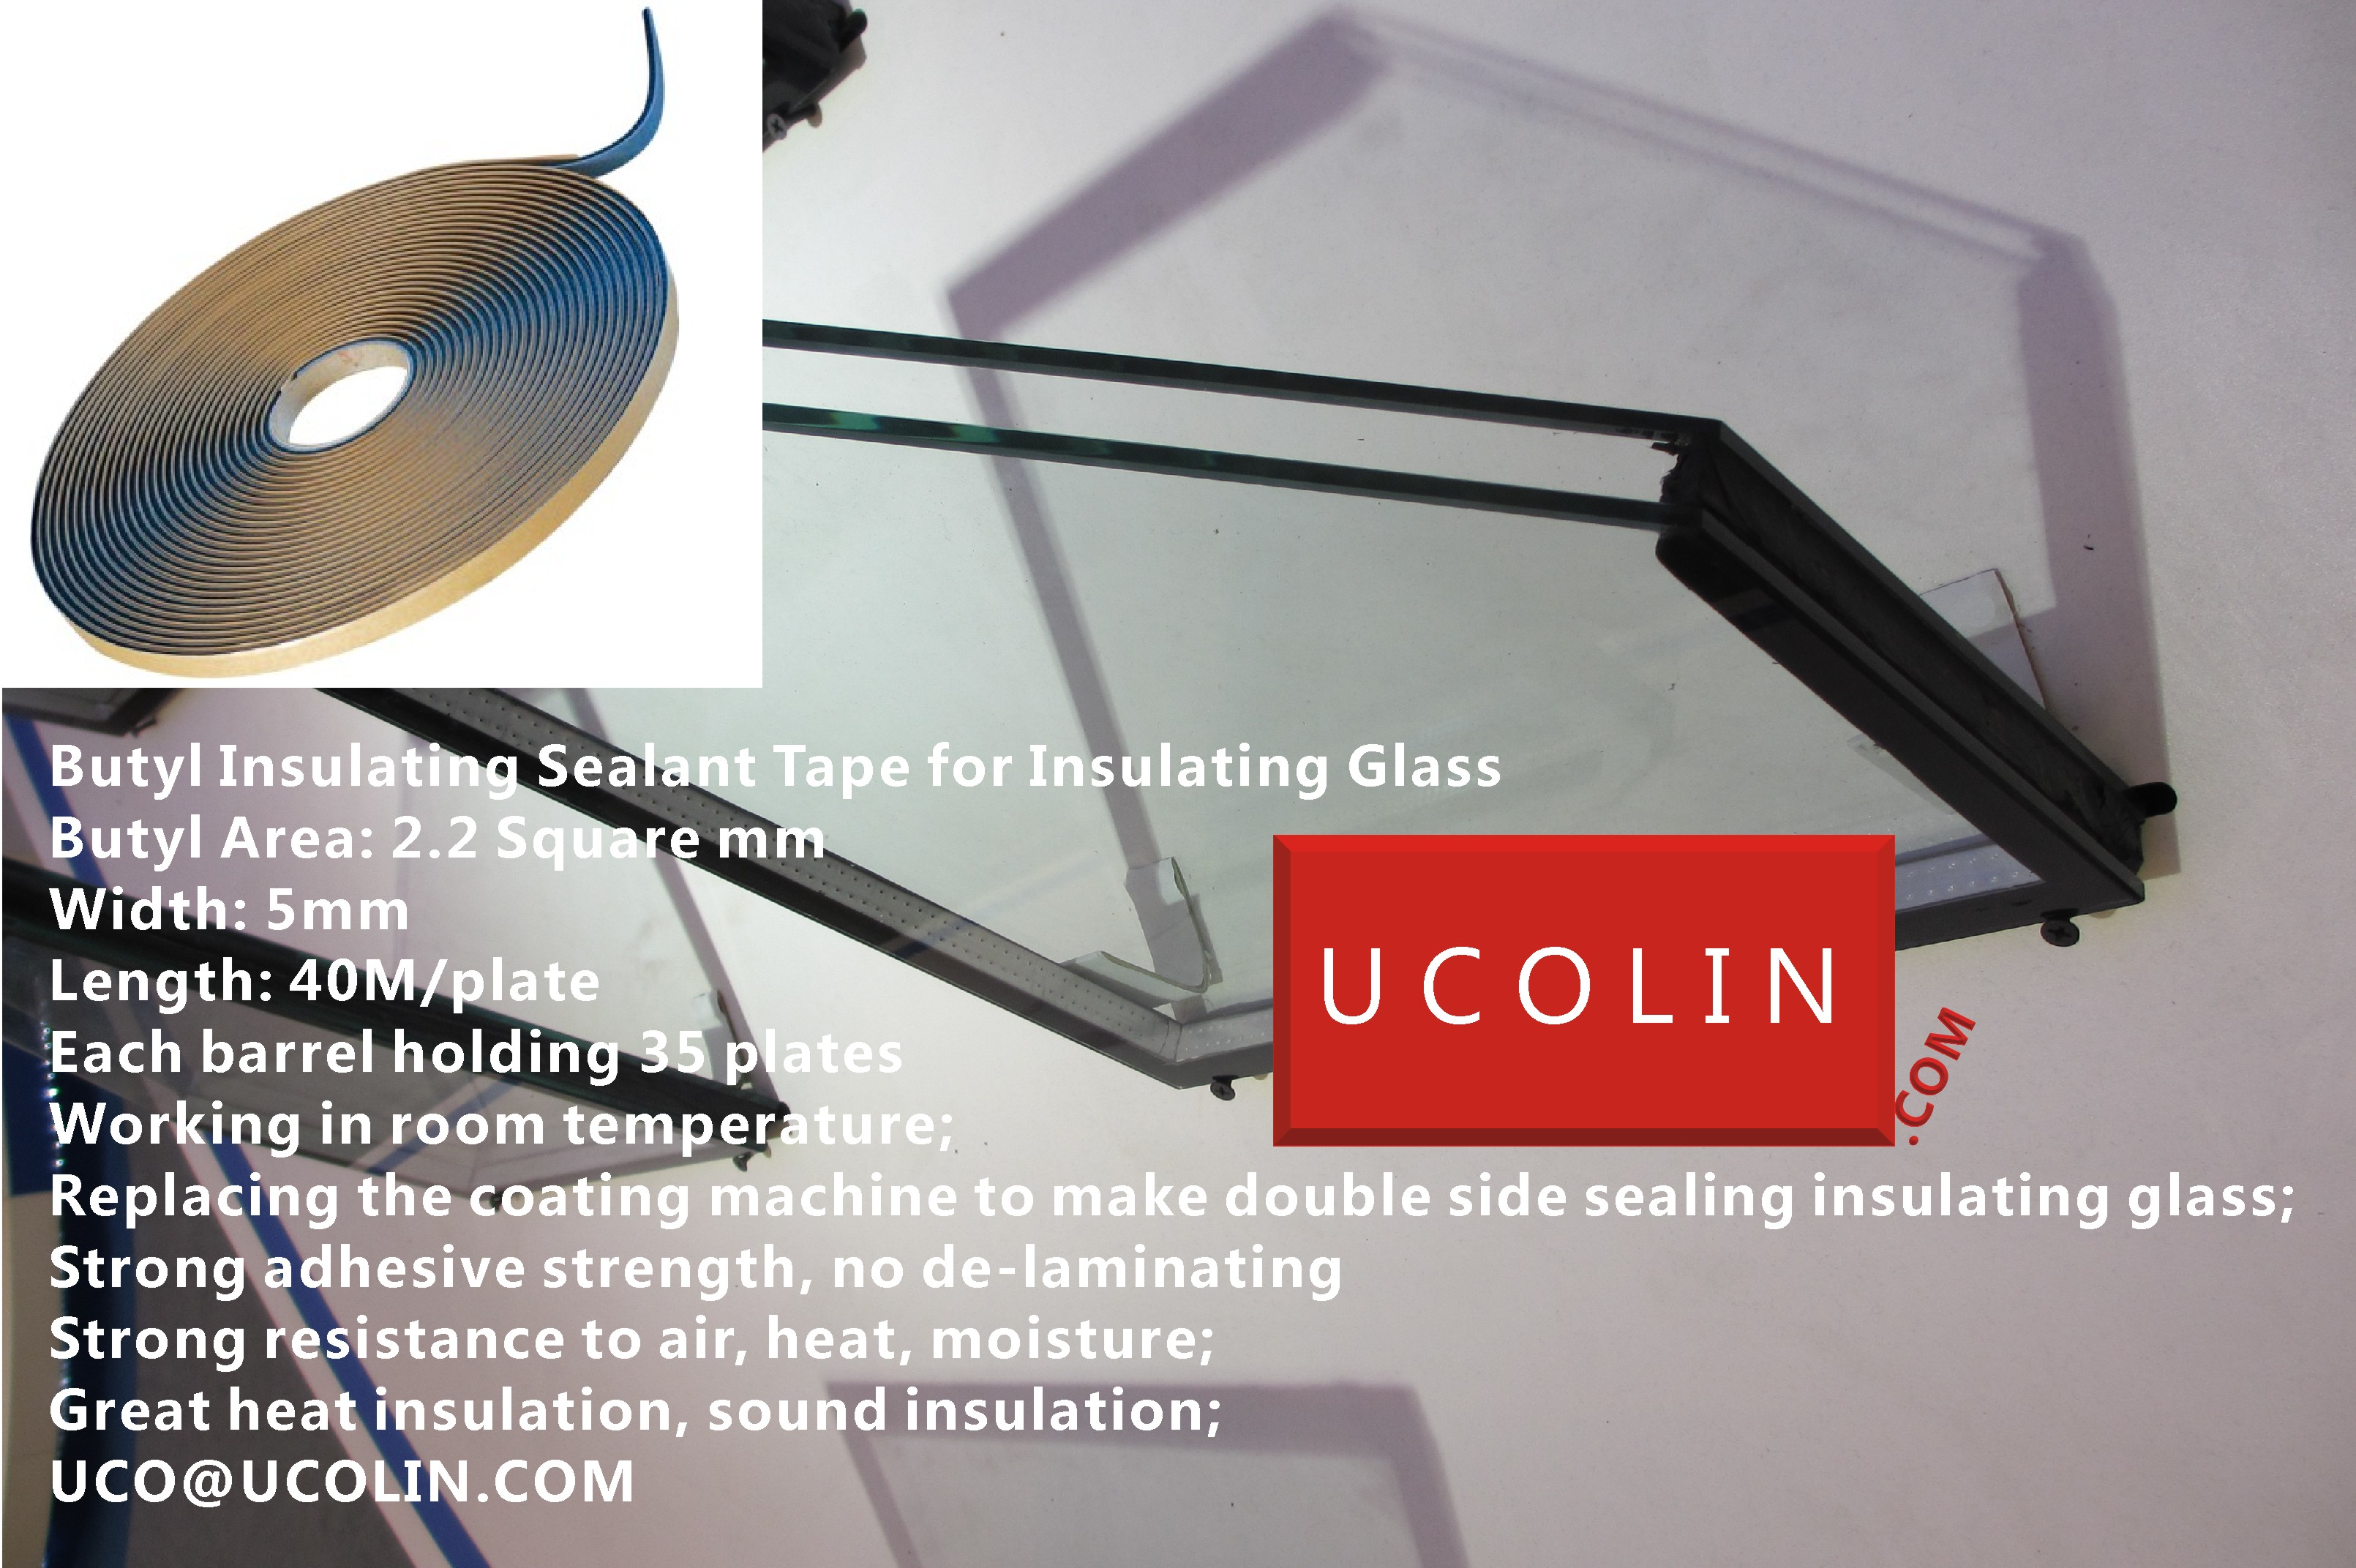 Butyl Insulating Sealant Tape for Insulating Glass